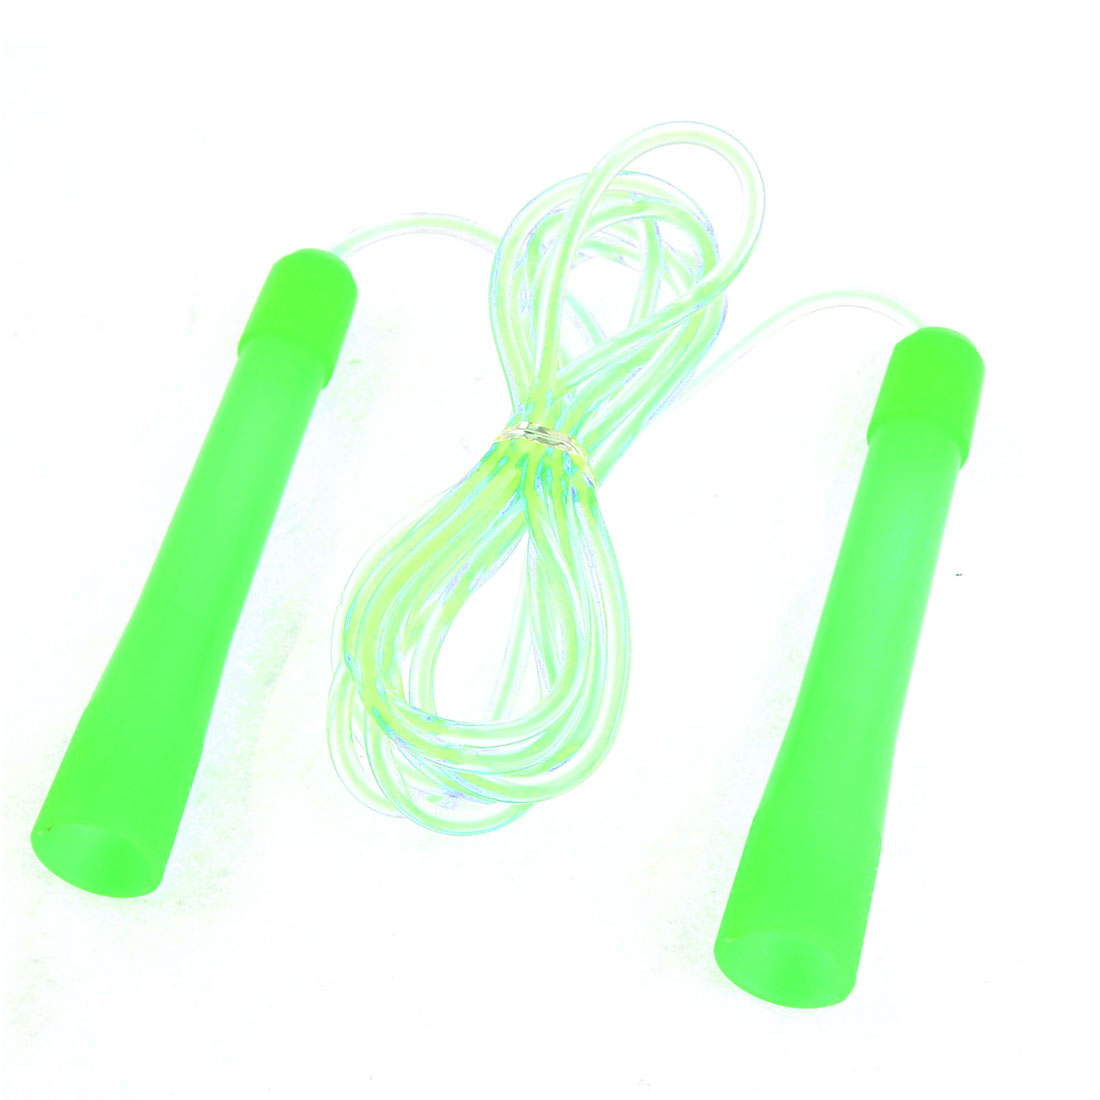 "5.4"" Length Plastic Handle Soft Green Luminous Skipping Jumping Rope Cord"